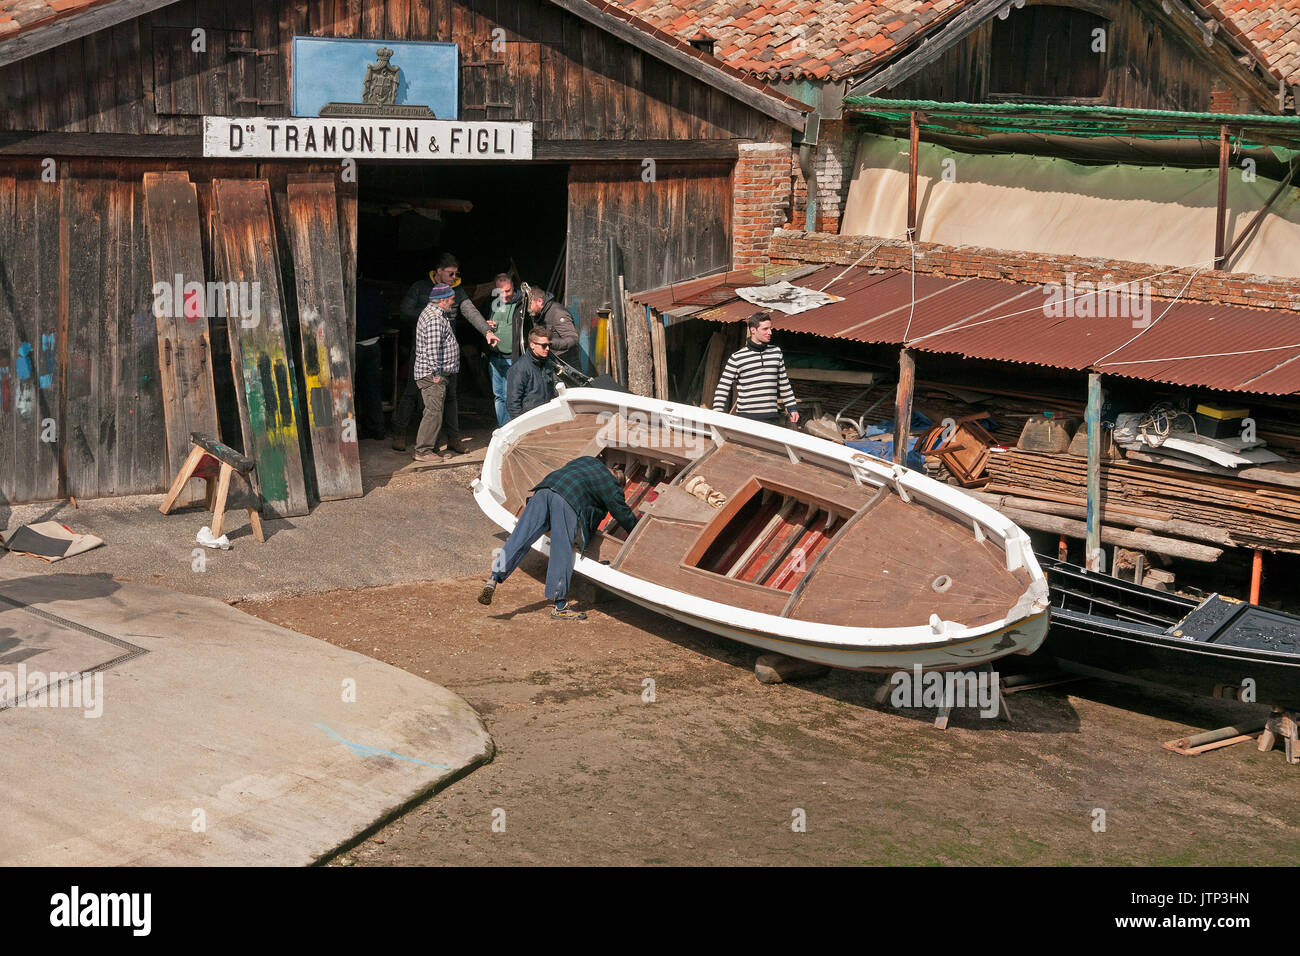 Men working on the boat building of Gondolas in a canal